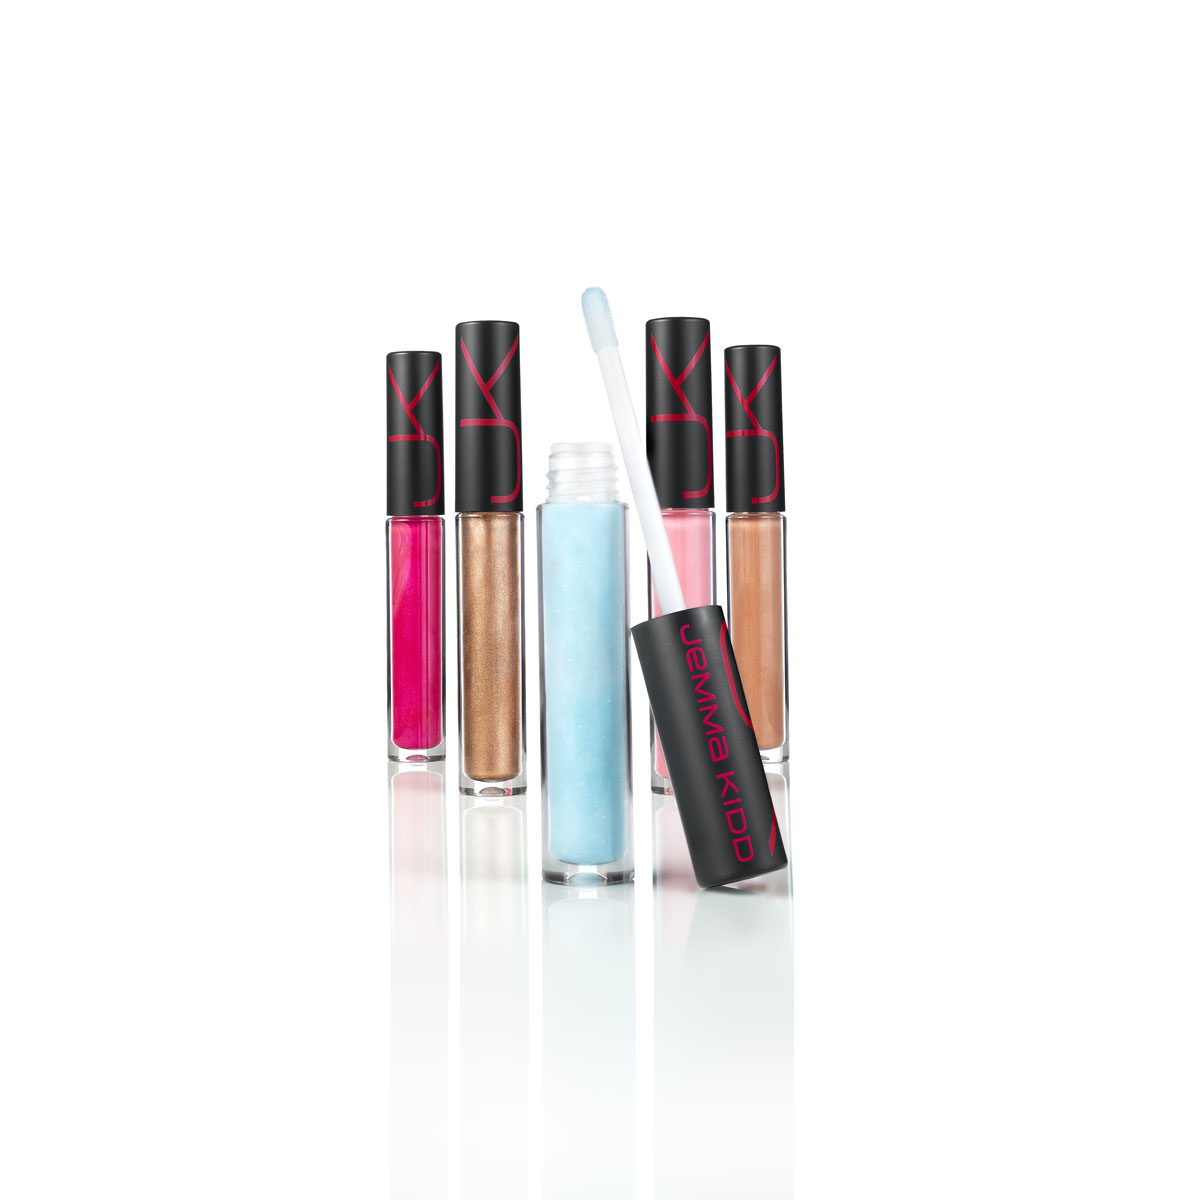 JK Jemma Kidd Maxi Kiss Plumping Lip Gloss (clear blue $17) and Air Kiss Shine Lipgloss ($16).